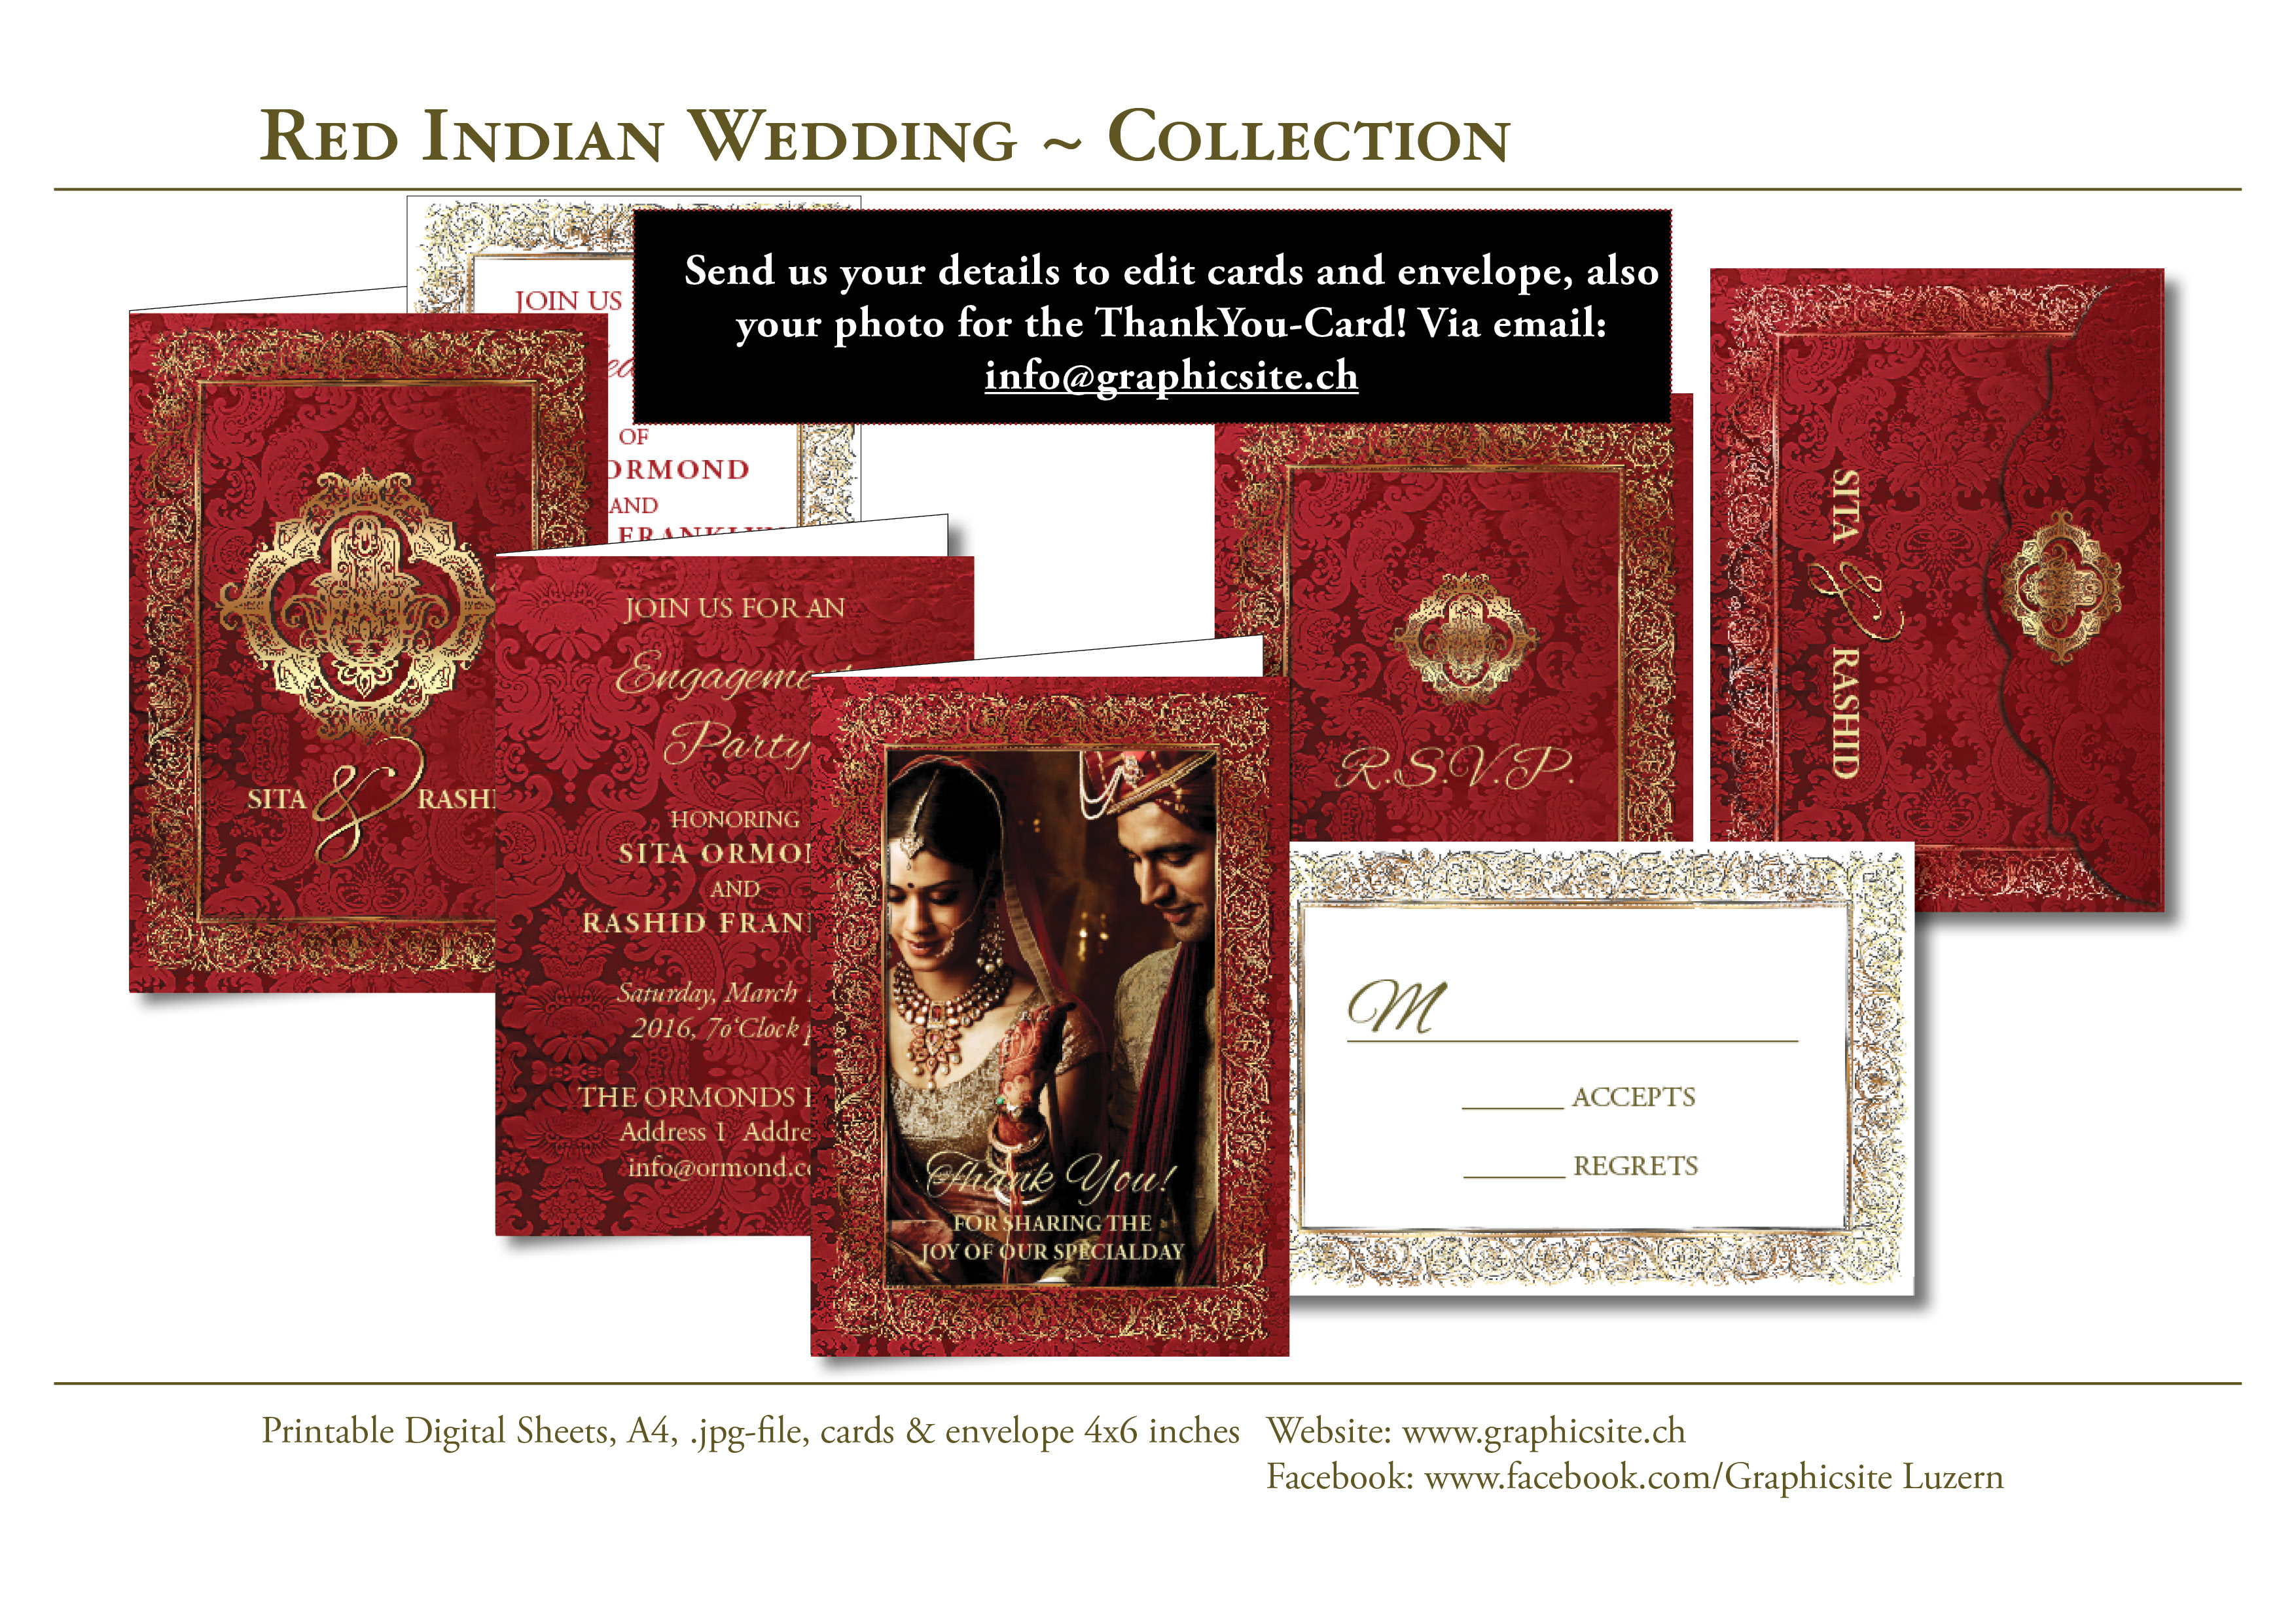 Red Indian Wedding - Invitation Collection - 6x4 inches #hochzeitskarten drucken Schweiz, Luzern